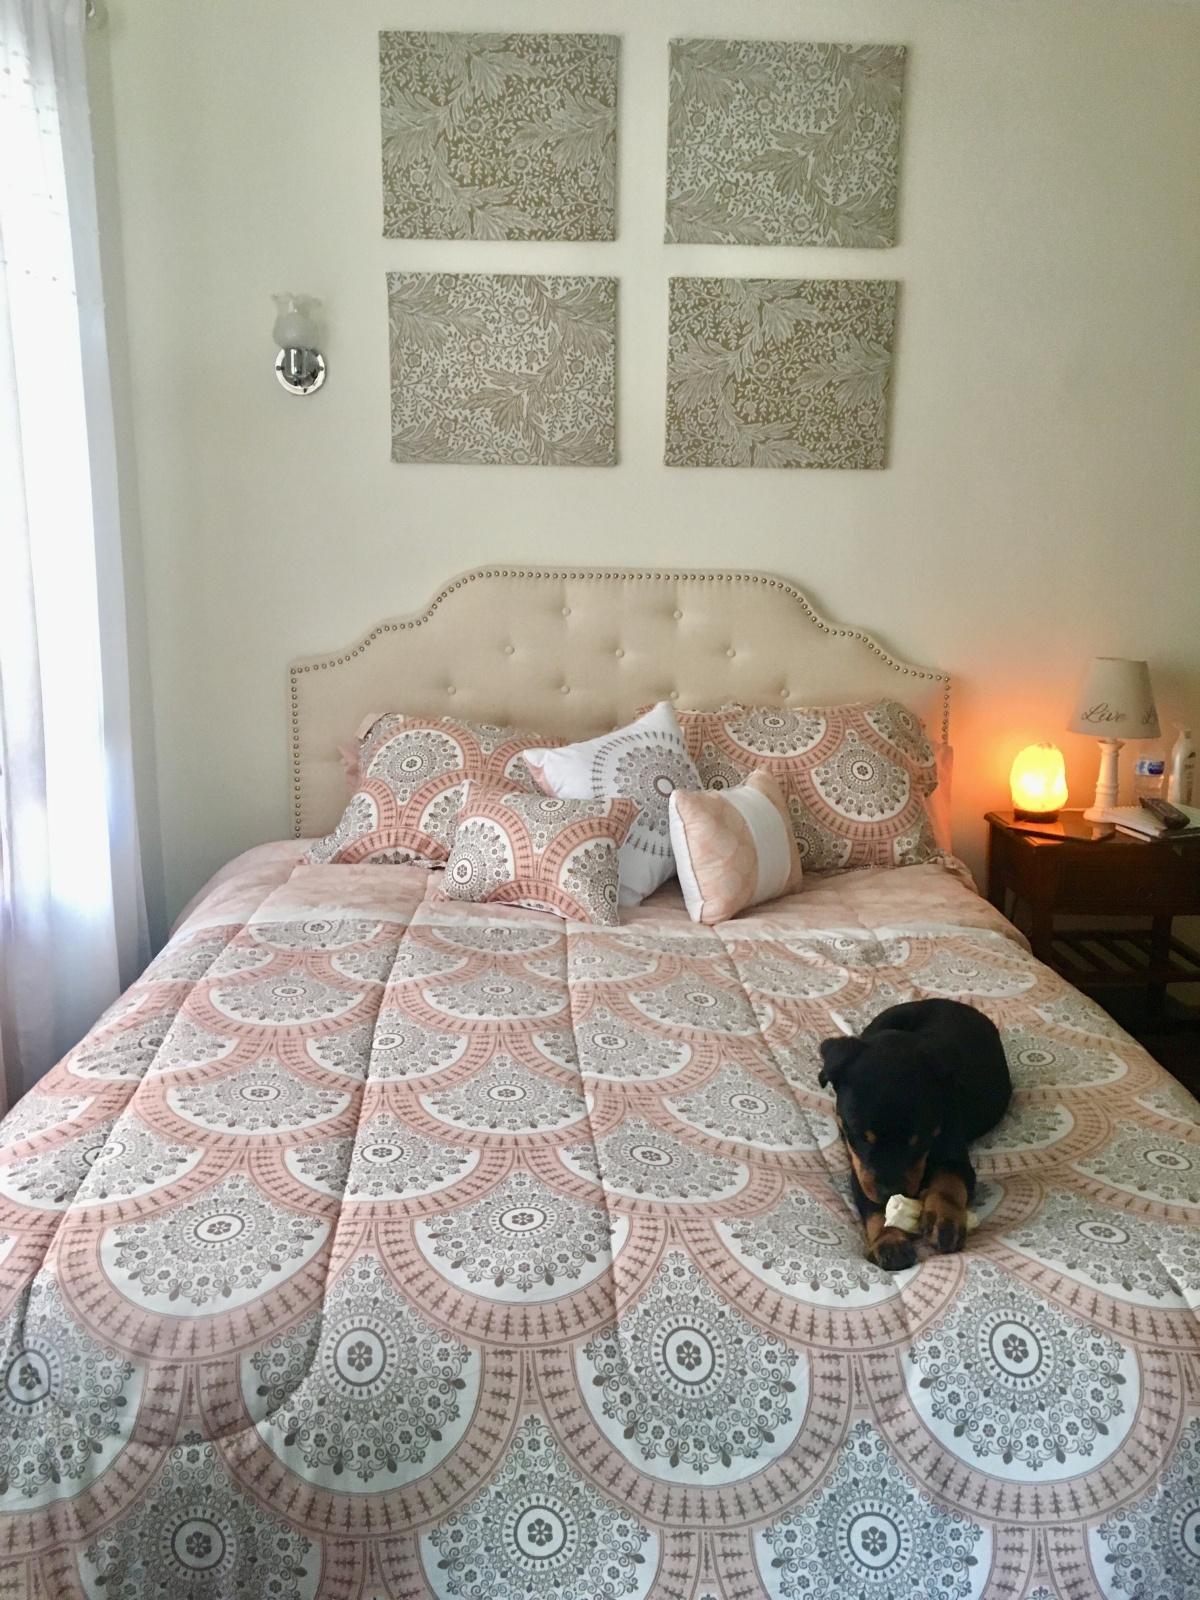 My Pinterest bedroom